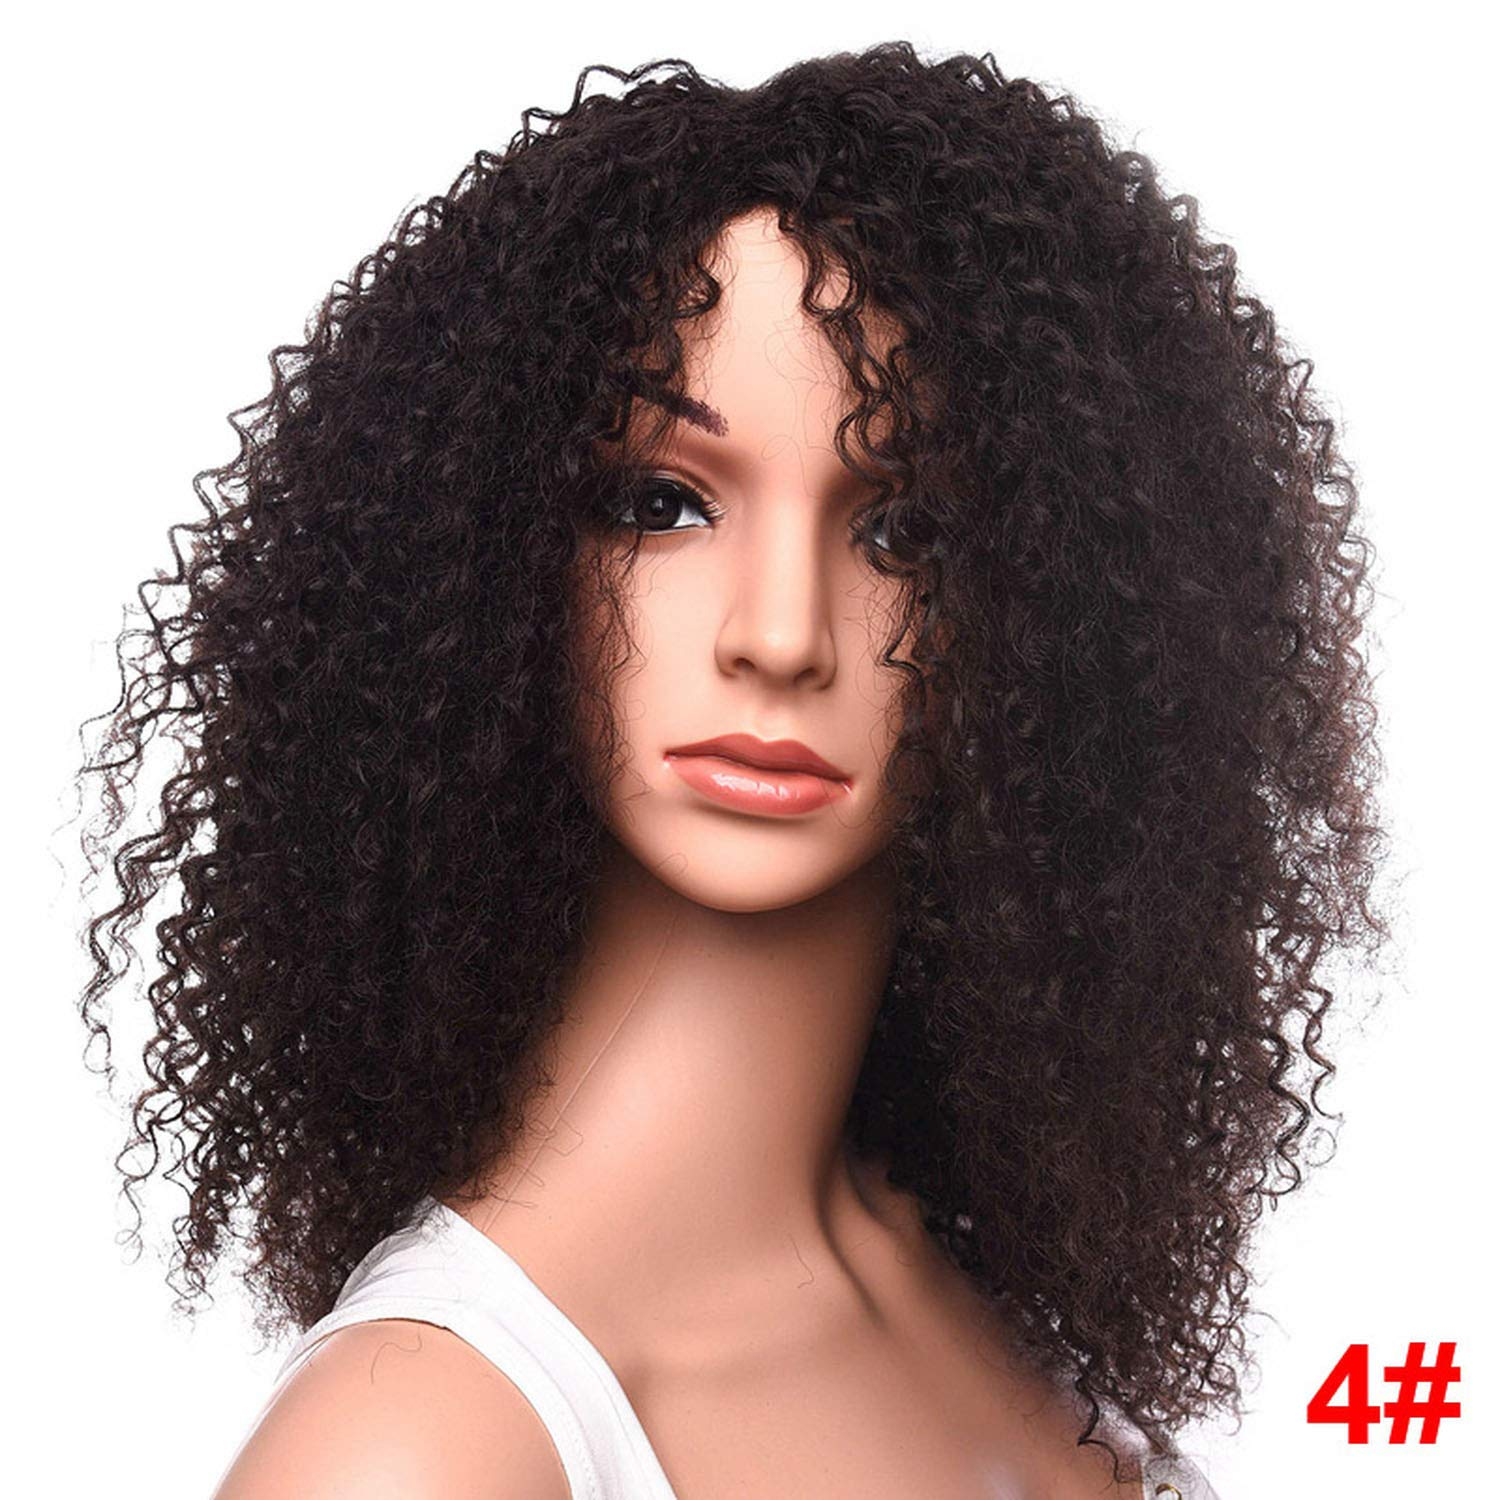 Amazon.com : Long Afro Kinky Curly Wig Medium Brown Synthetic Wigs for Black Women African Hairstyle, #1B, 18inches : Beauty